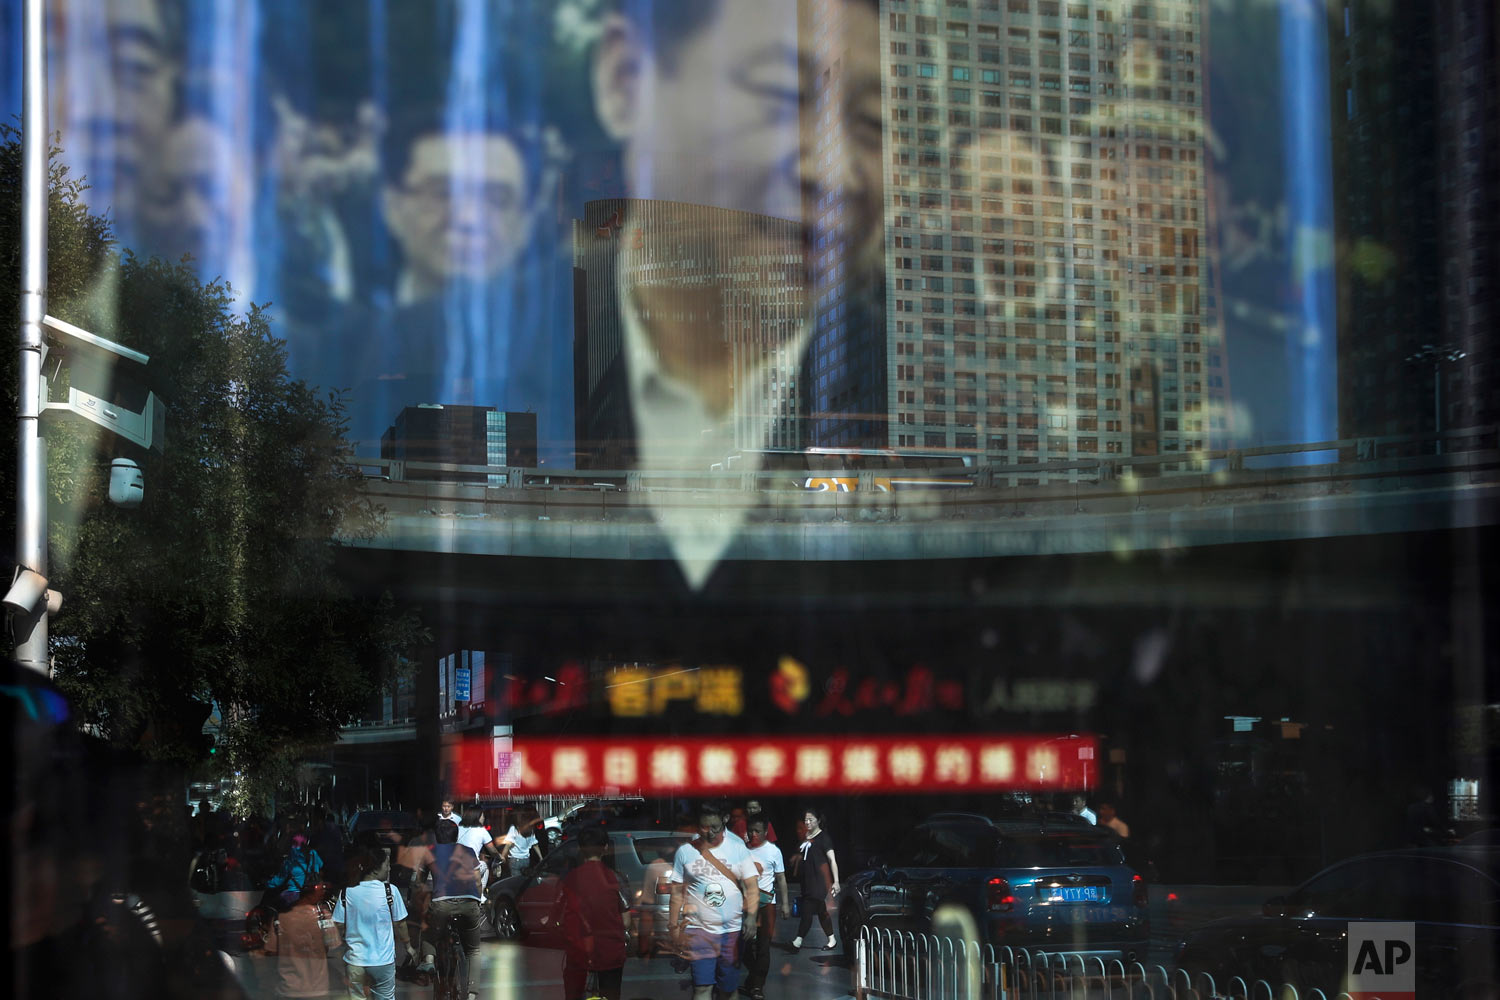 In this Wednesday, May 30, 2018, photo, people and motorists in morning rush hour are reflected on an electronic display panel advertising a video footage of Chinese President Xi Jinping near the Central Business District in Beijing. Chinese factory activity grew at its fastest rate in eight months on stronger demand, a survey showed Thursday, May 31, 2018 in a positive sign for the world's No. 2 economy despite trade tensions with the U.S. China's services industry is playing a bigger role as communist leaders upgrade economic growth, shifting it from a worn-out model based on wasteful trade and investment to one focused on domestic spending. (AP Photo/Andy Wong)